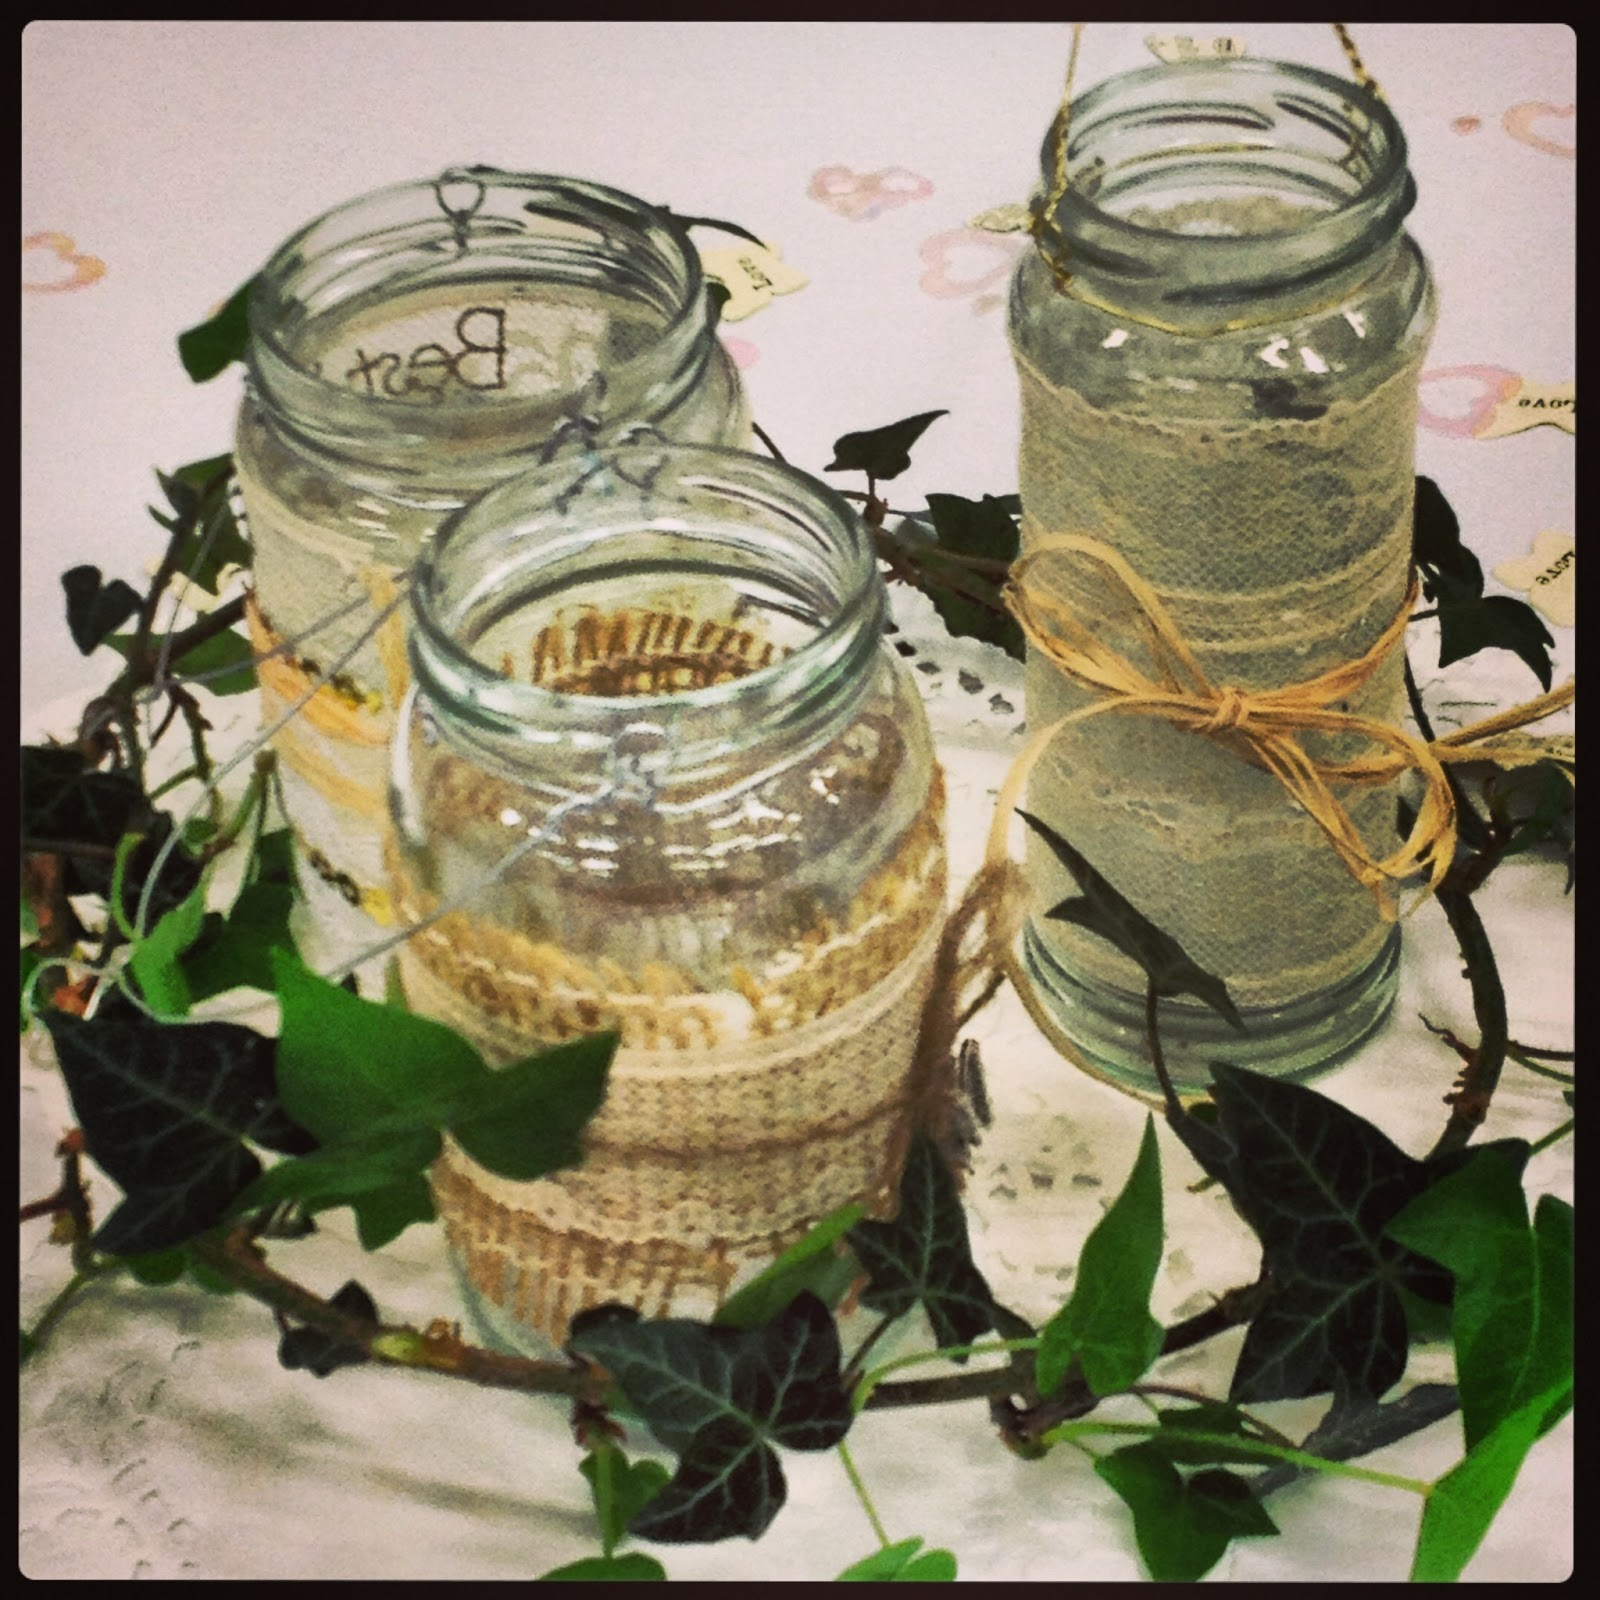 Wedding Centerpieces On A Budget: Make It Up: Handmade Wedding Decorations On A Budget